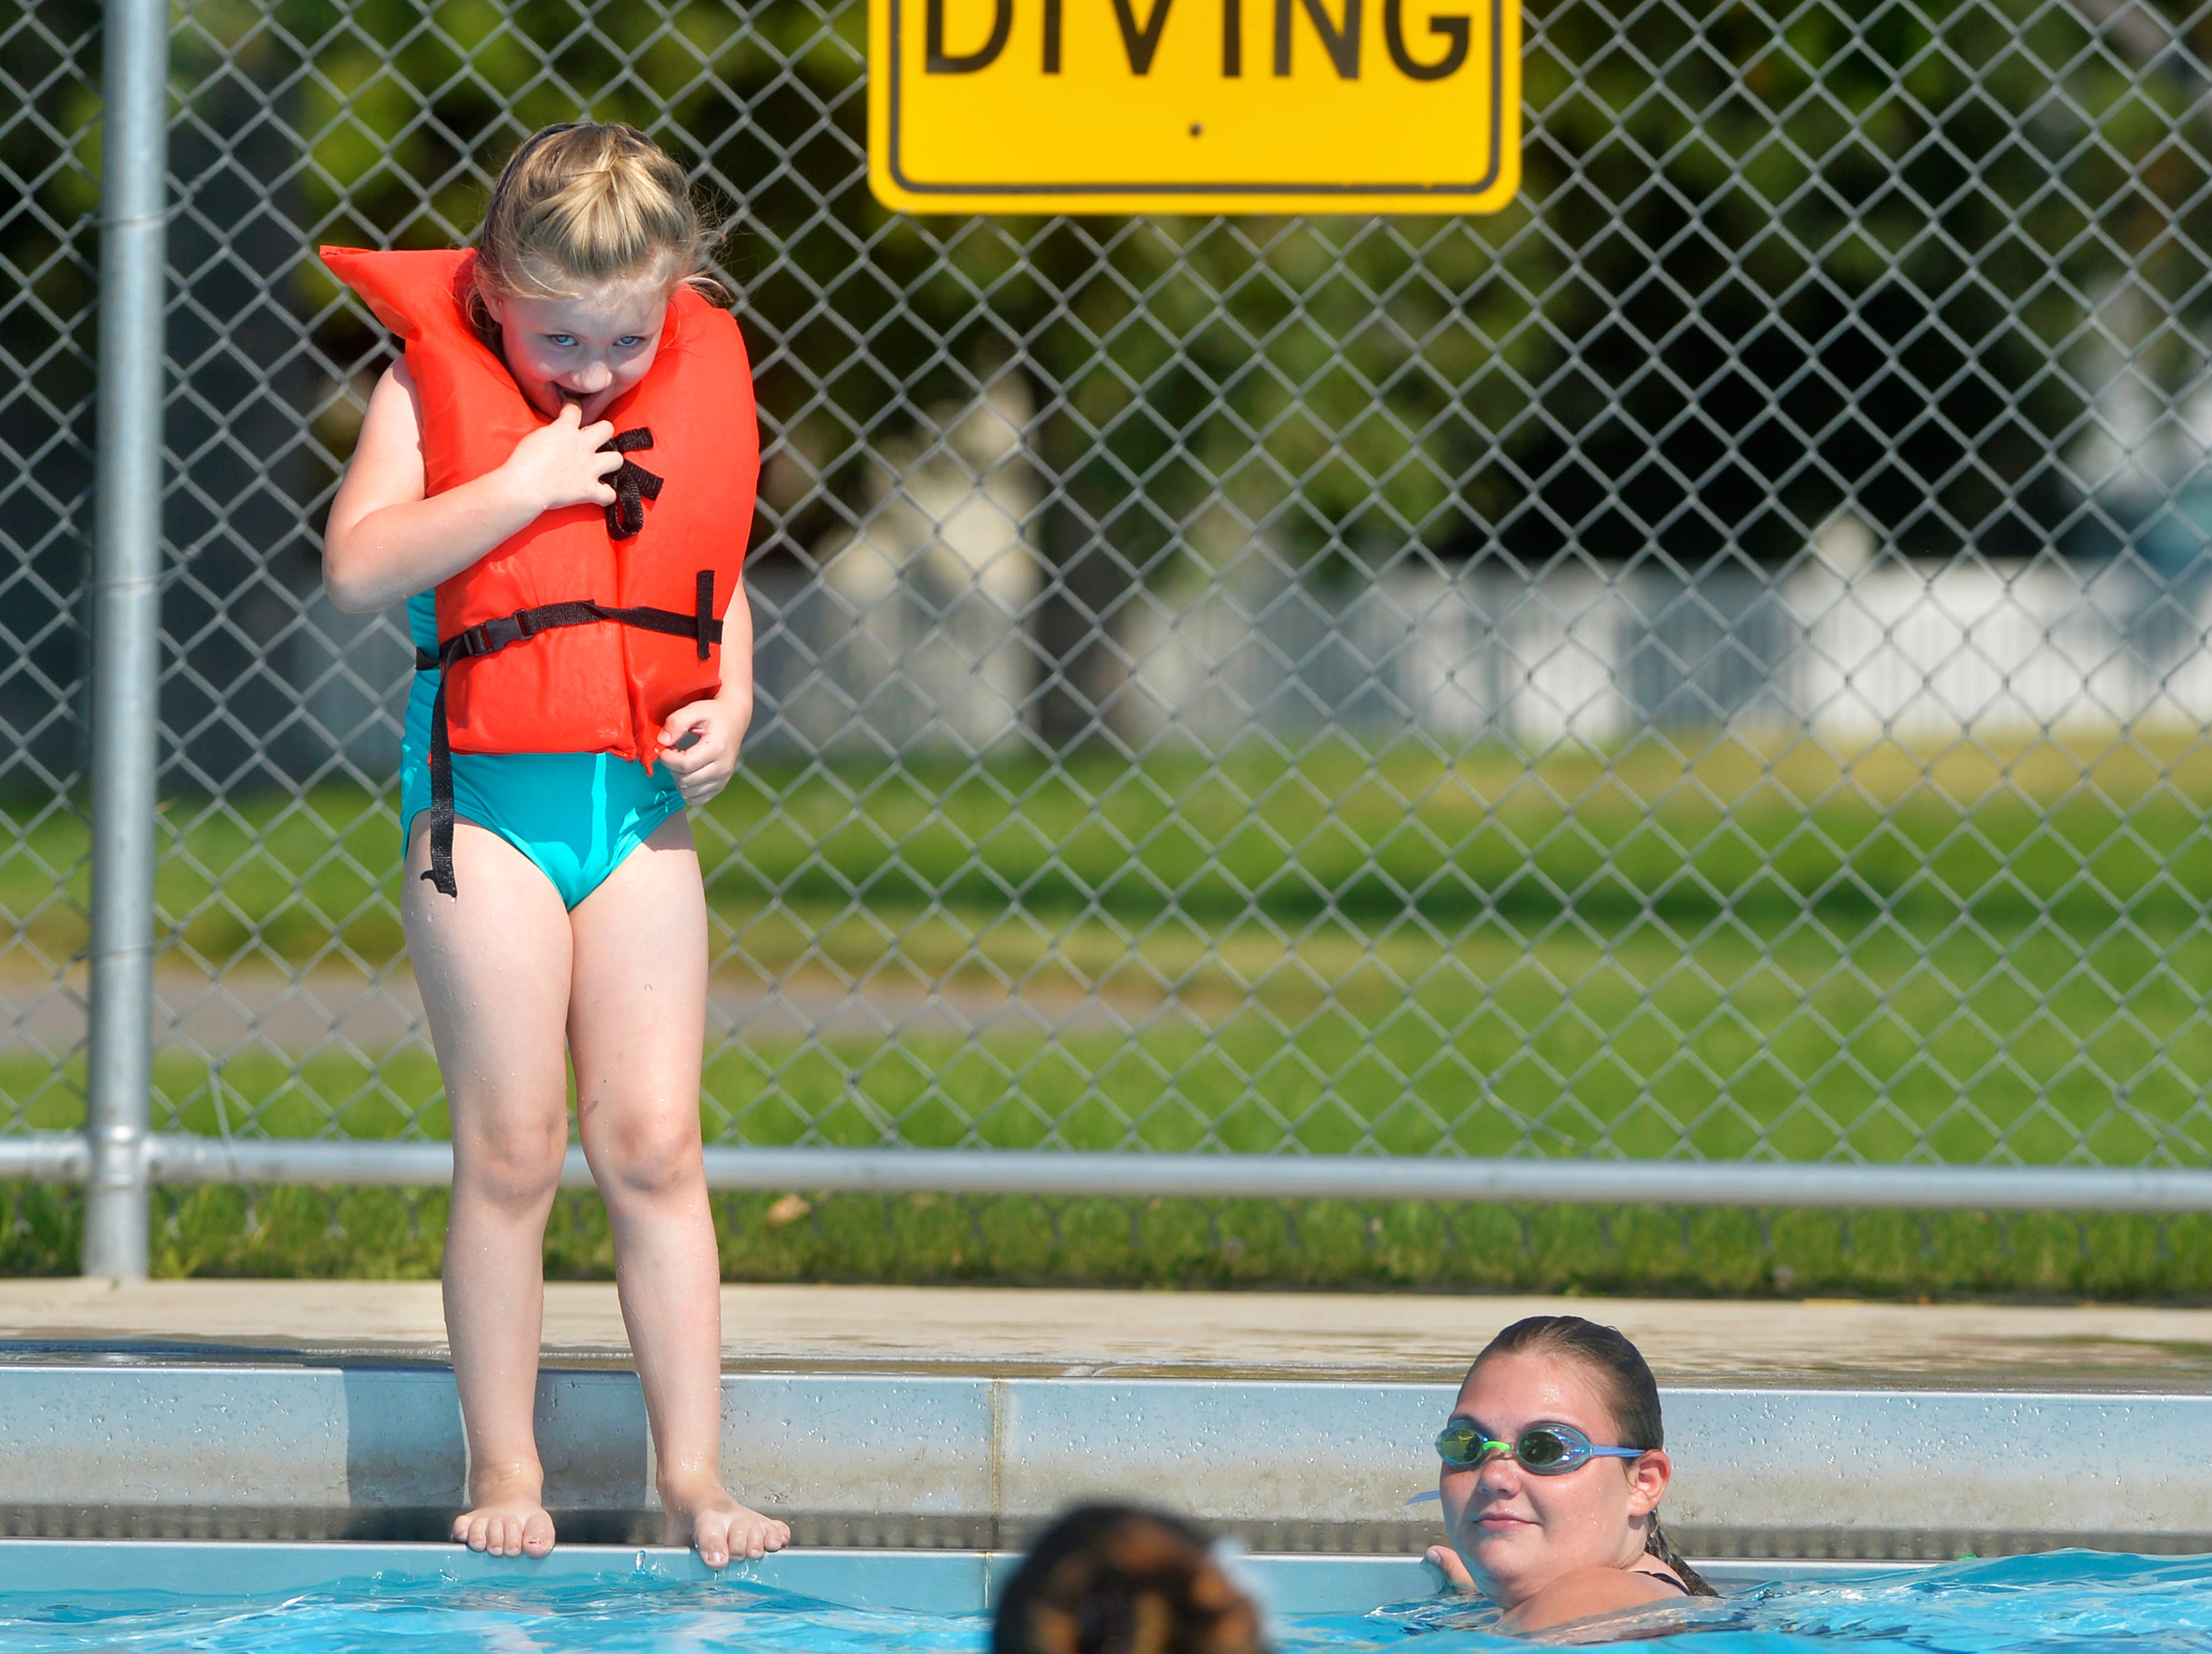 Ivy Bauer, age 5, inches closer to jumping in with some encouragement from her family on Thursday at the Water Tower Pool.